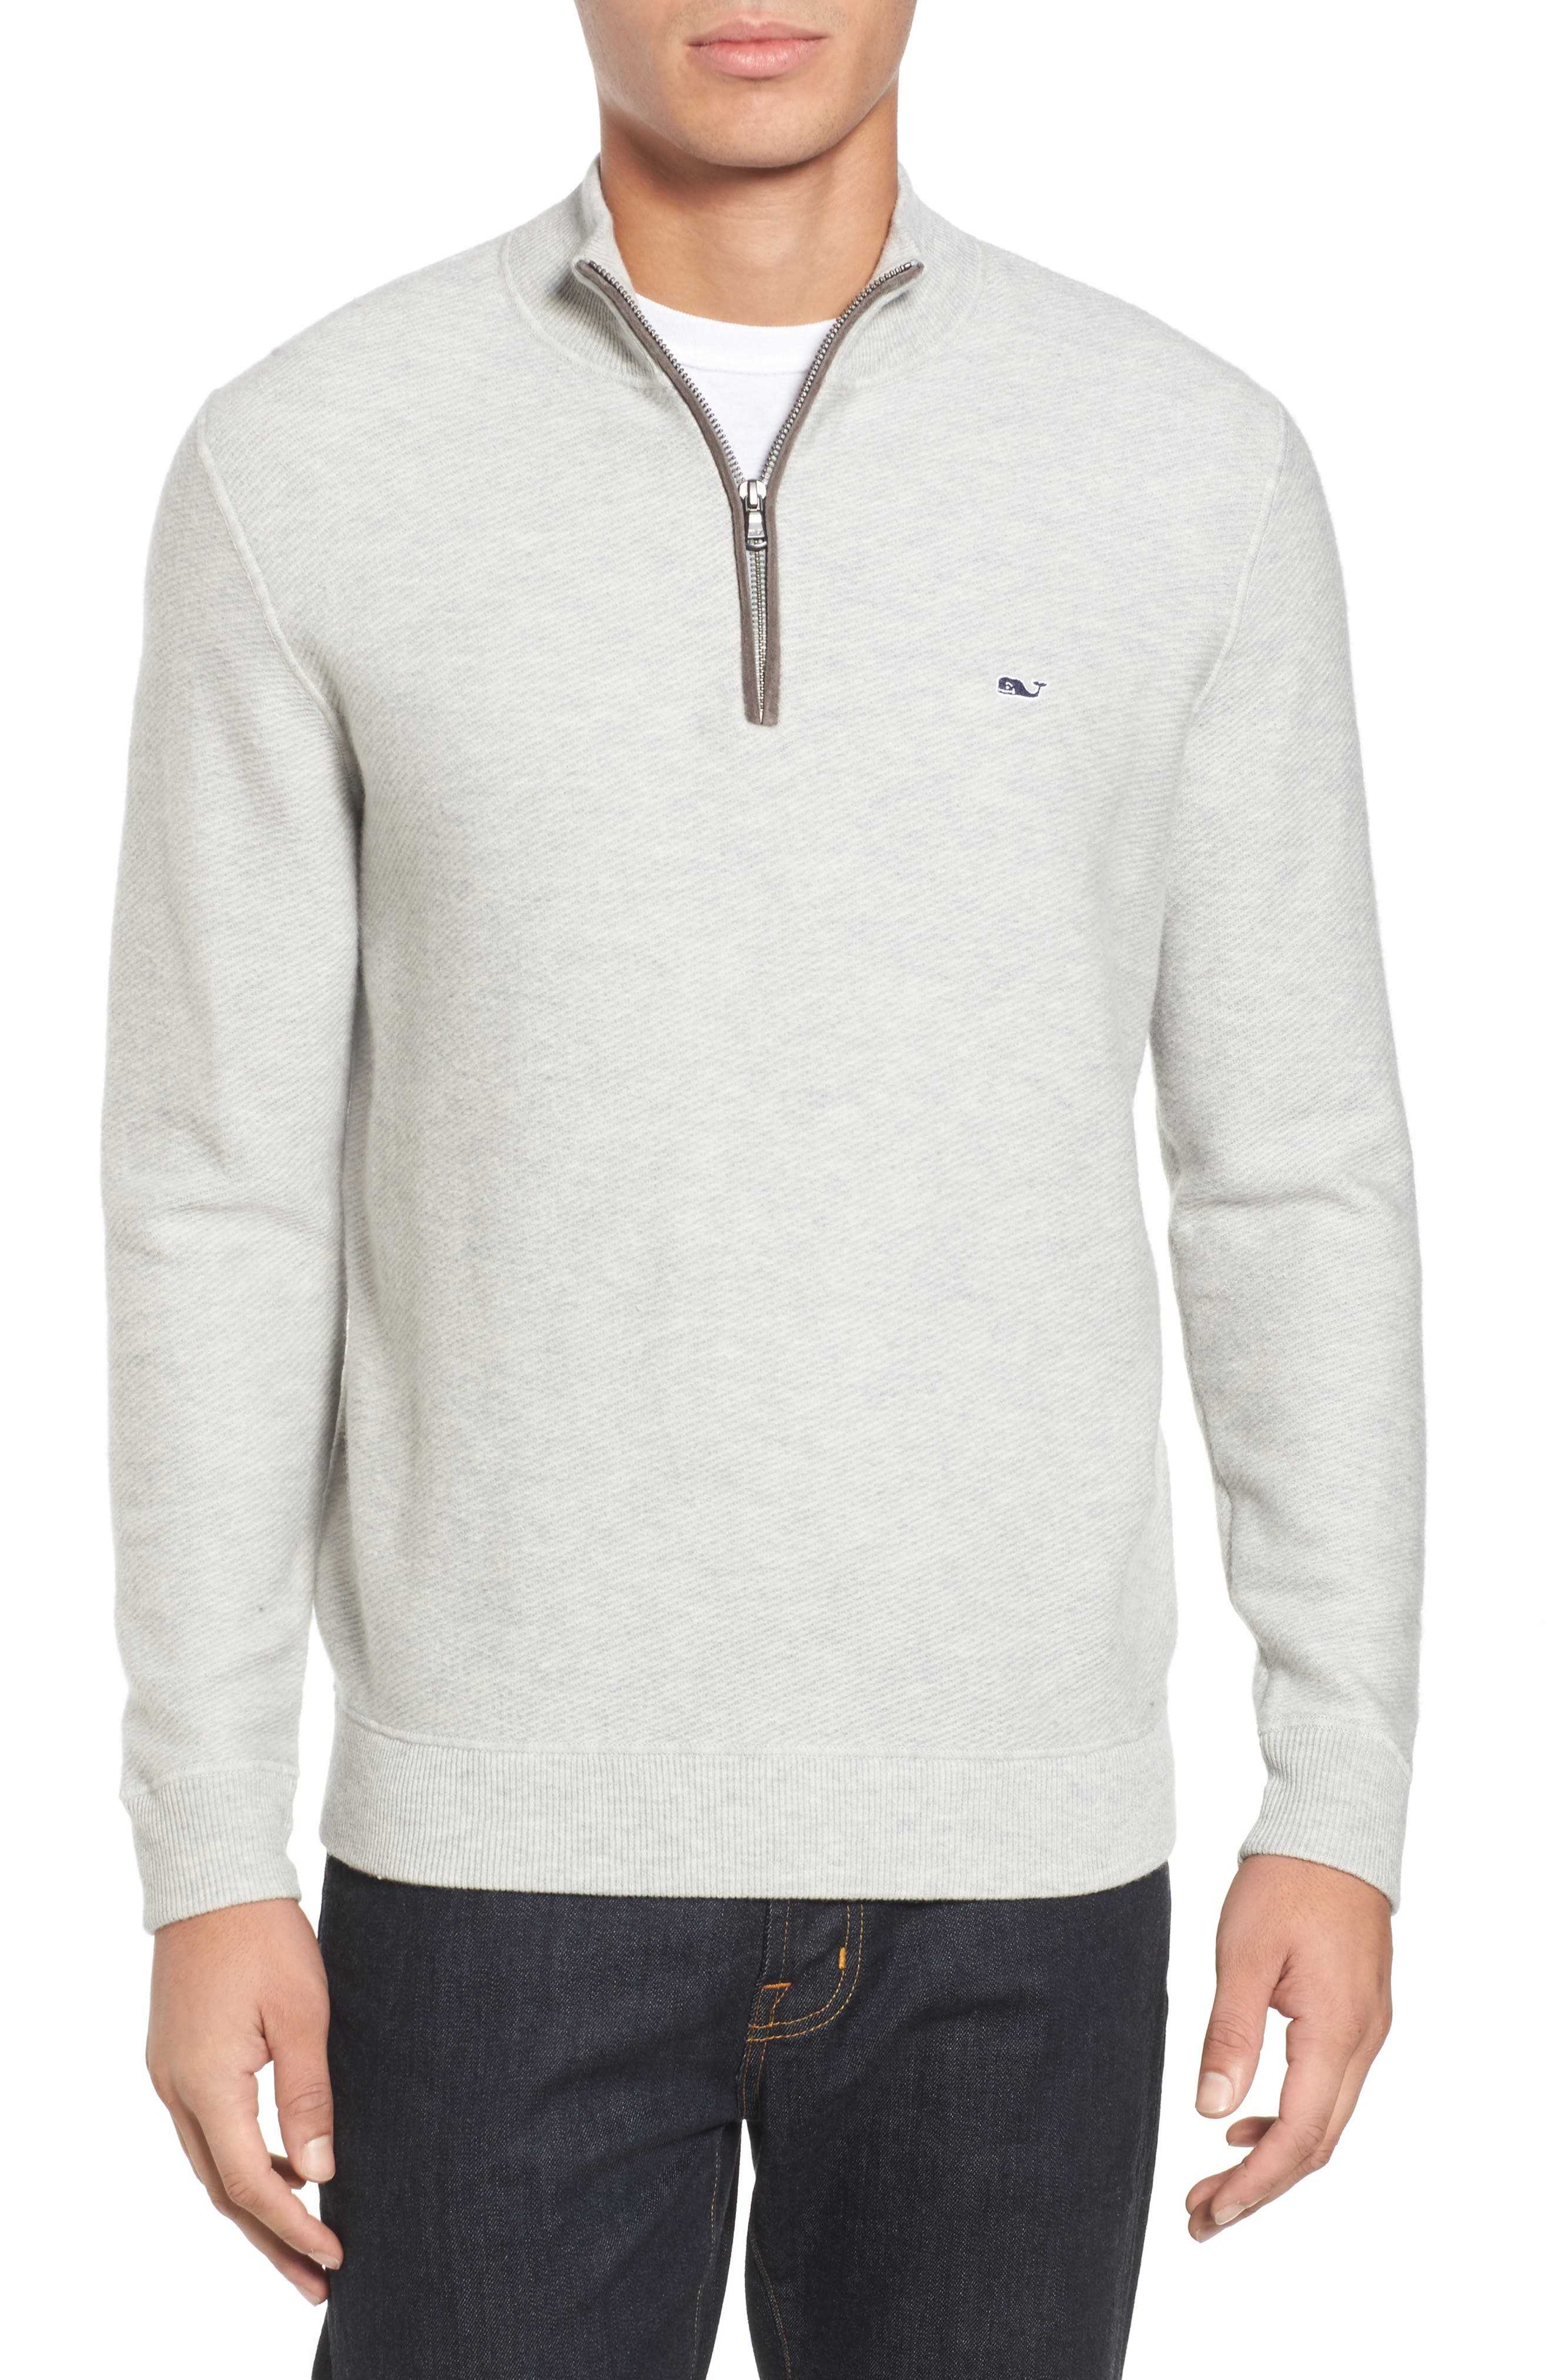 Alternate Image 1 Selected - vineyard vines Merino Wool Twill Stitch Quarter Zip Sweater